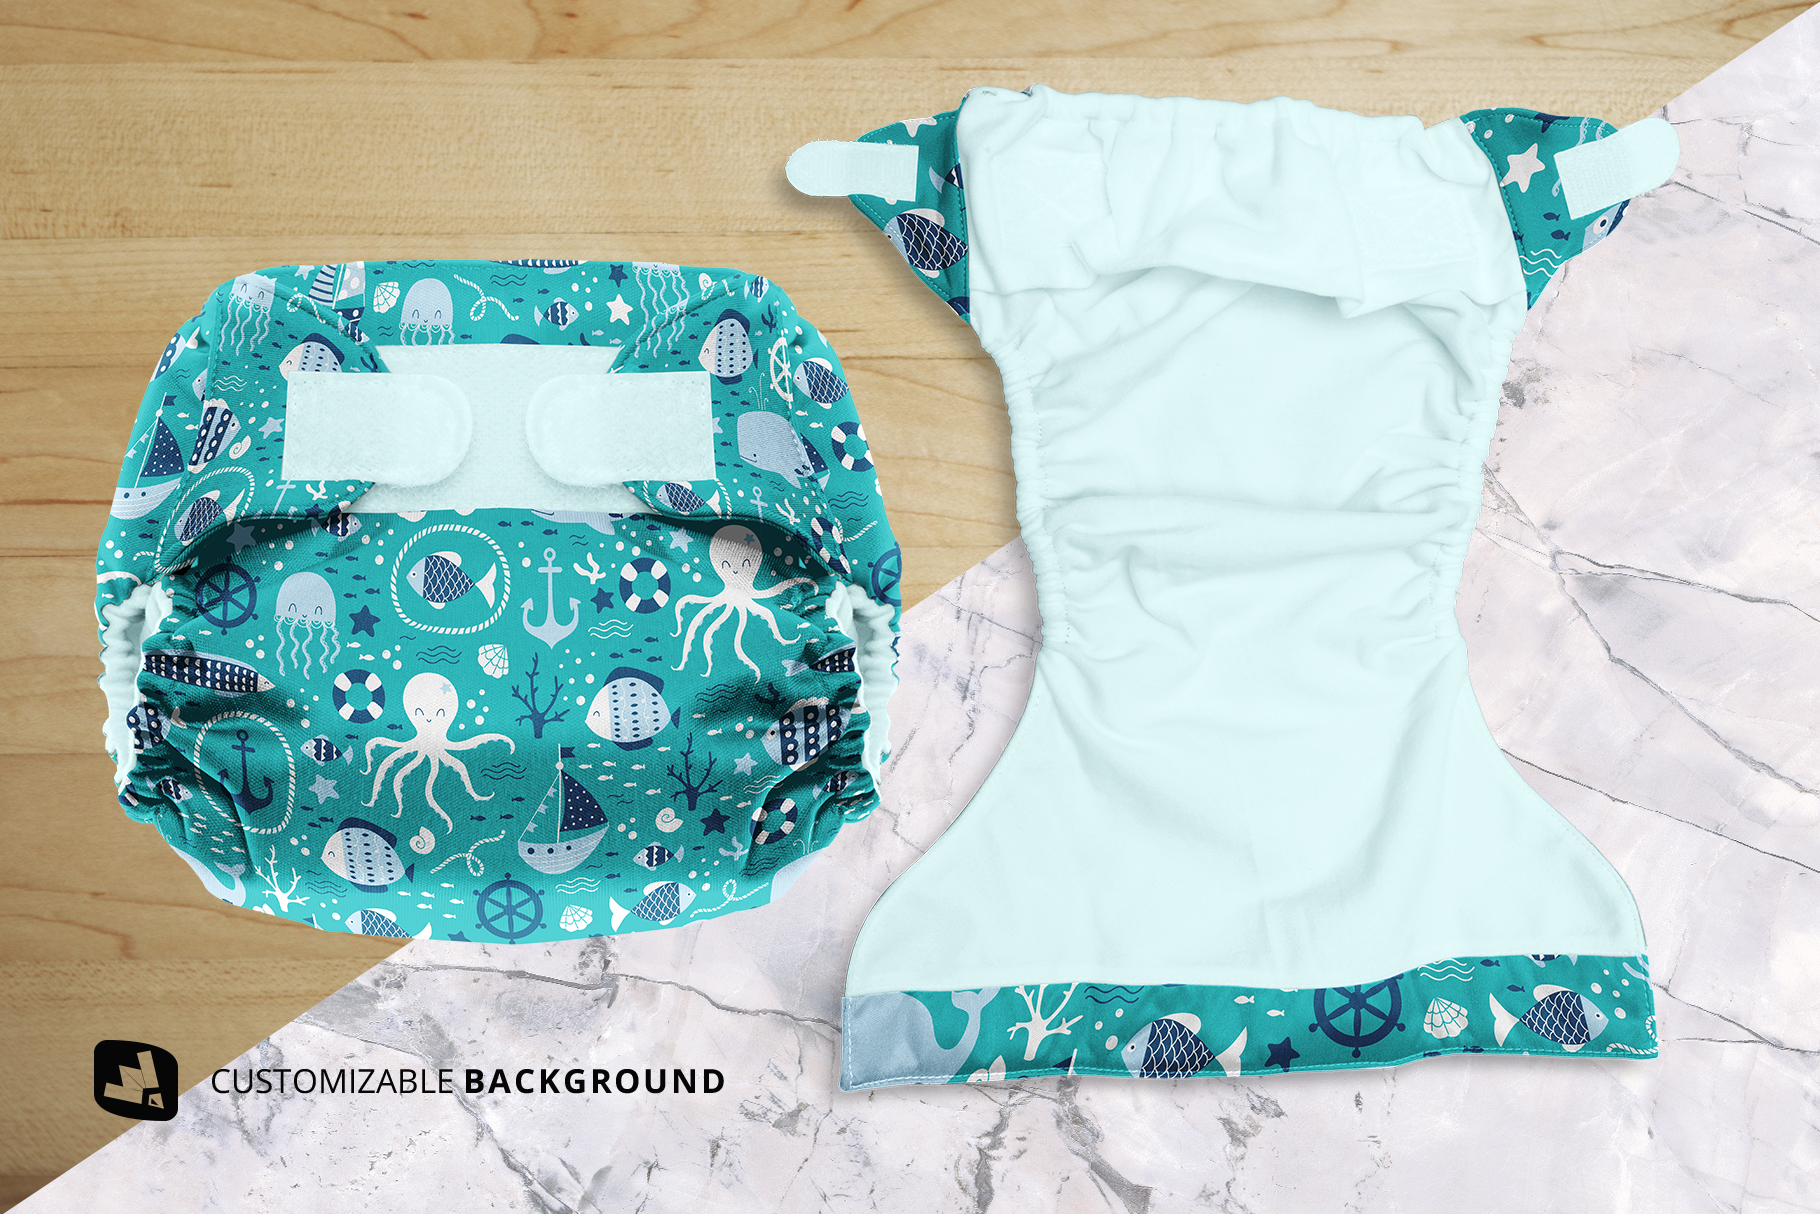 background options of the reusable velcro cloth diaper mockup